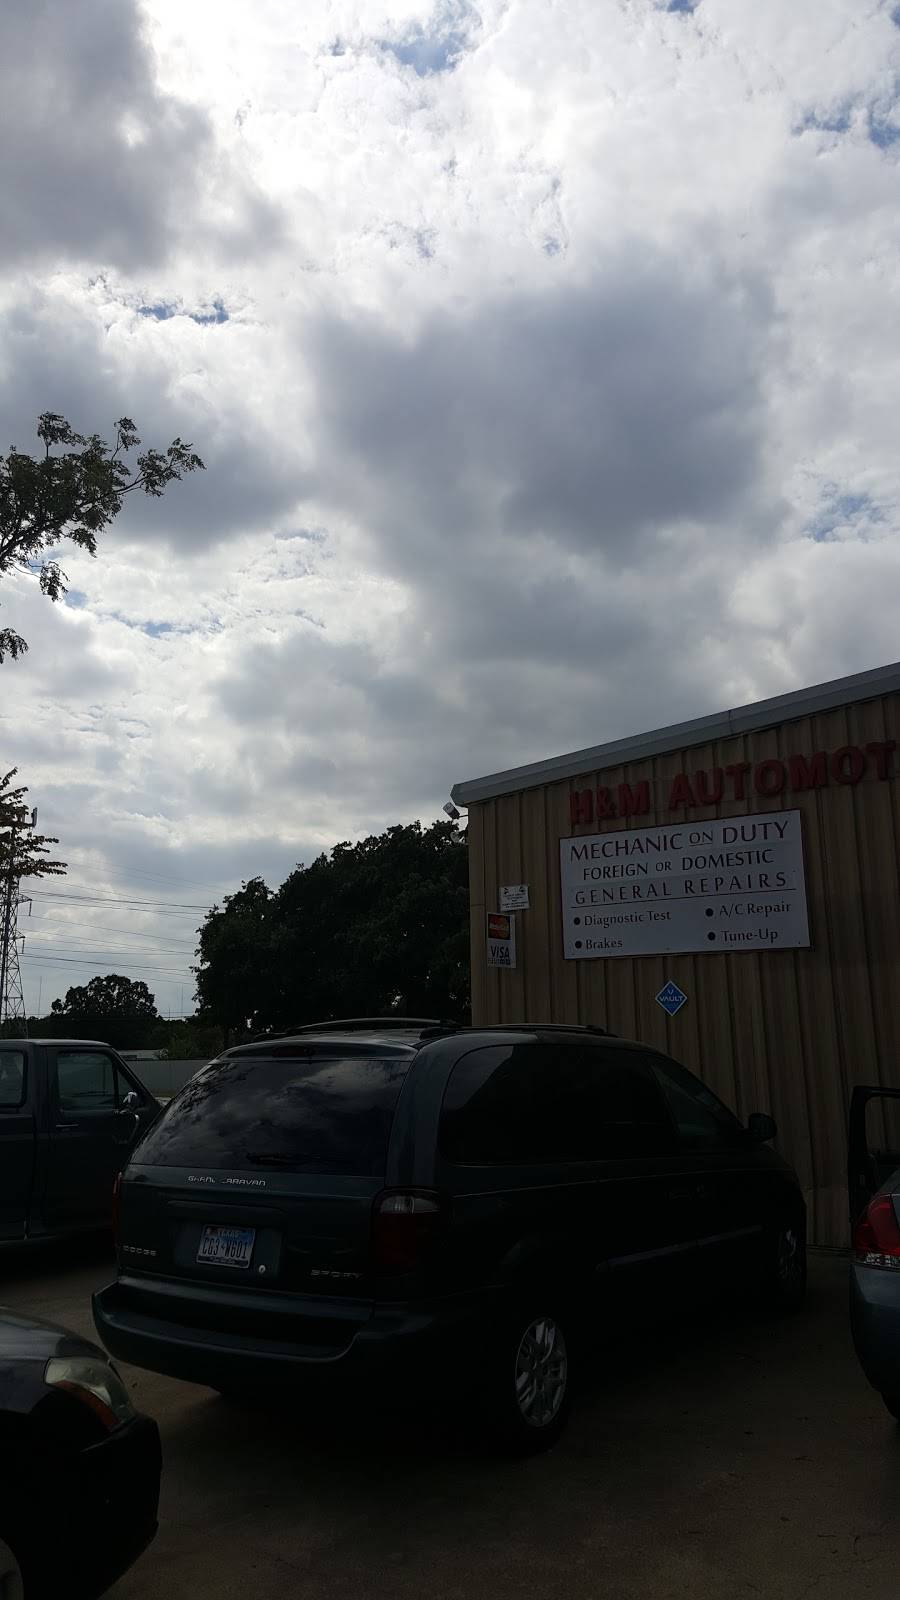 H & M Automotive & Truck - car repair  | Photo 2 of 2 | Address: 309 Compton Ave, Irving, TX 75061, USA | Phone: (972) 790-1711